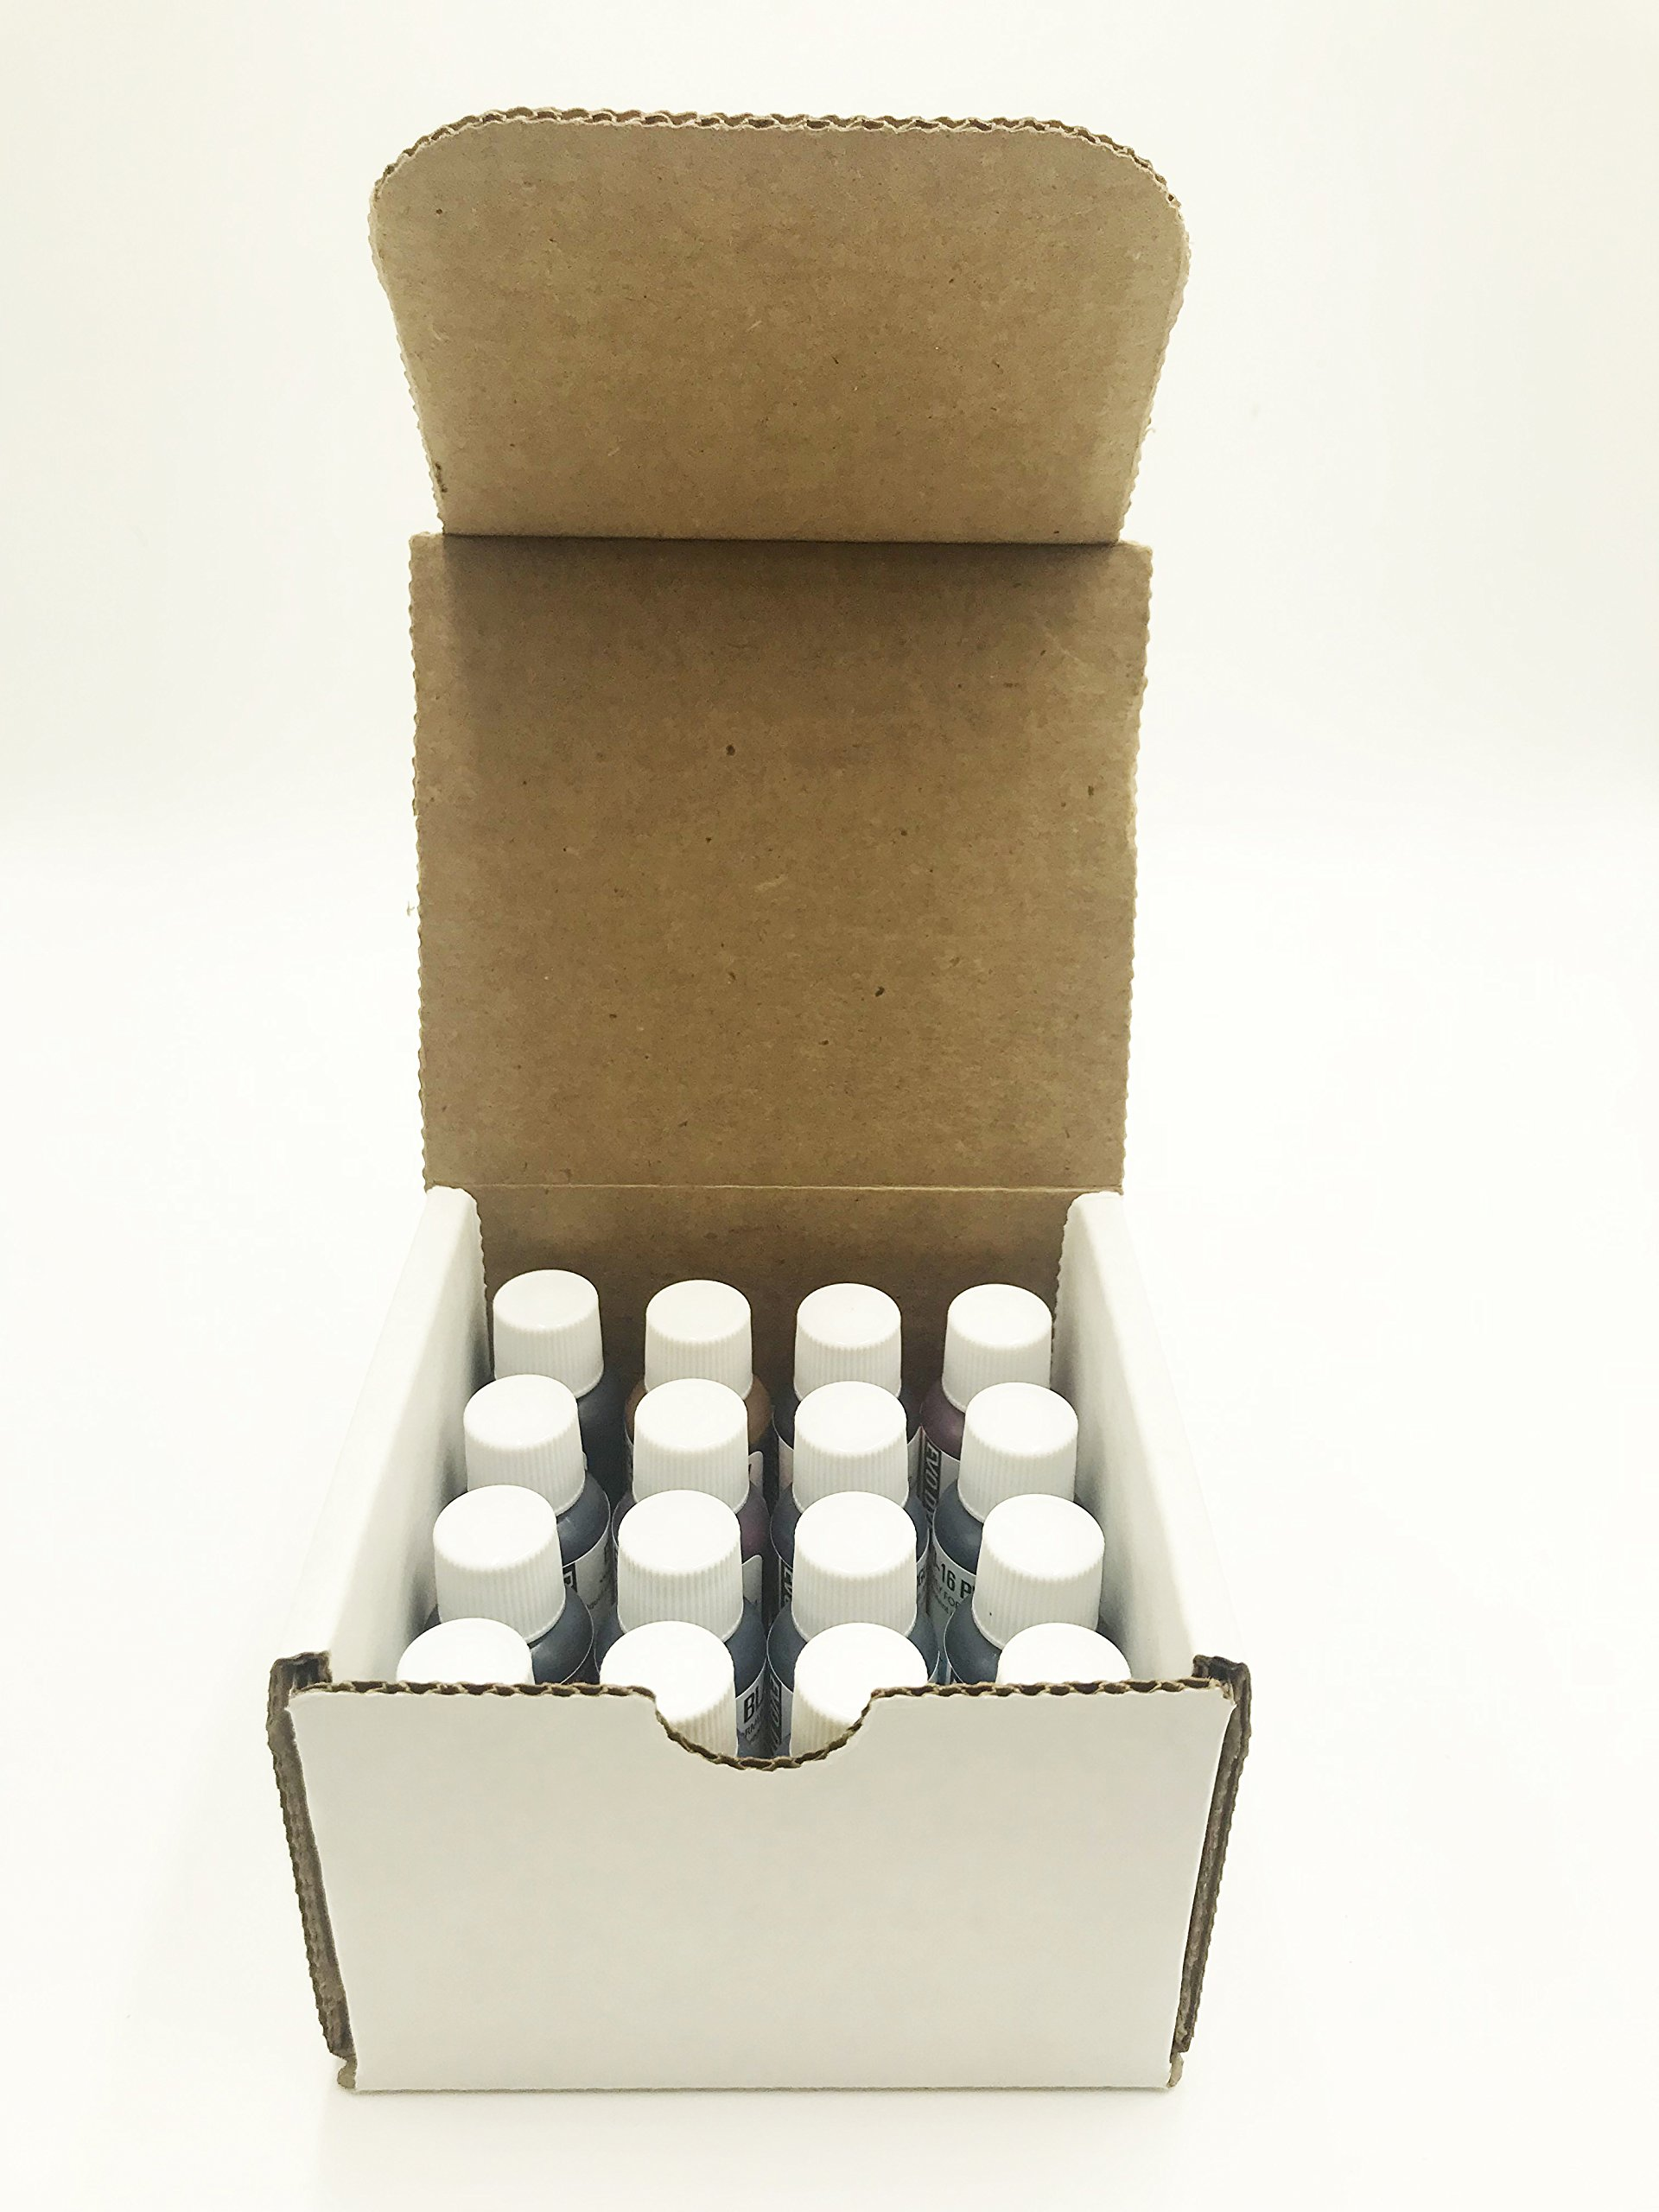 CANDLEWIC'S 16PK Highly Concentrated Liquid Candle Dyes